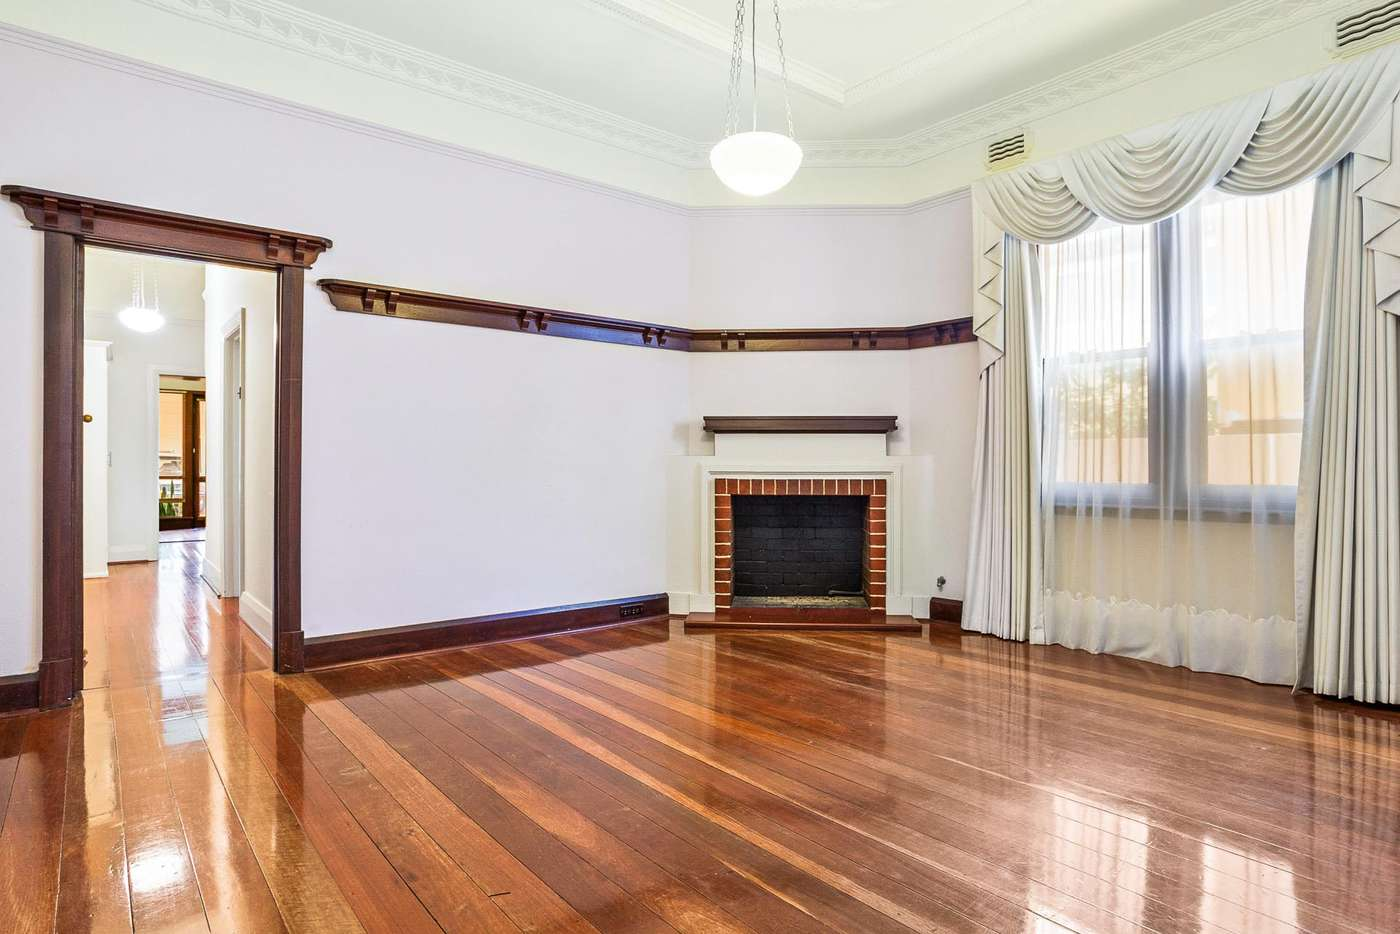 Main view of Homely apartment listing, 1/94 Walcott Street, Mount Lawley WA 6050